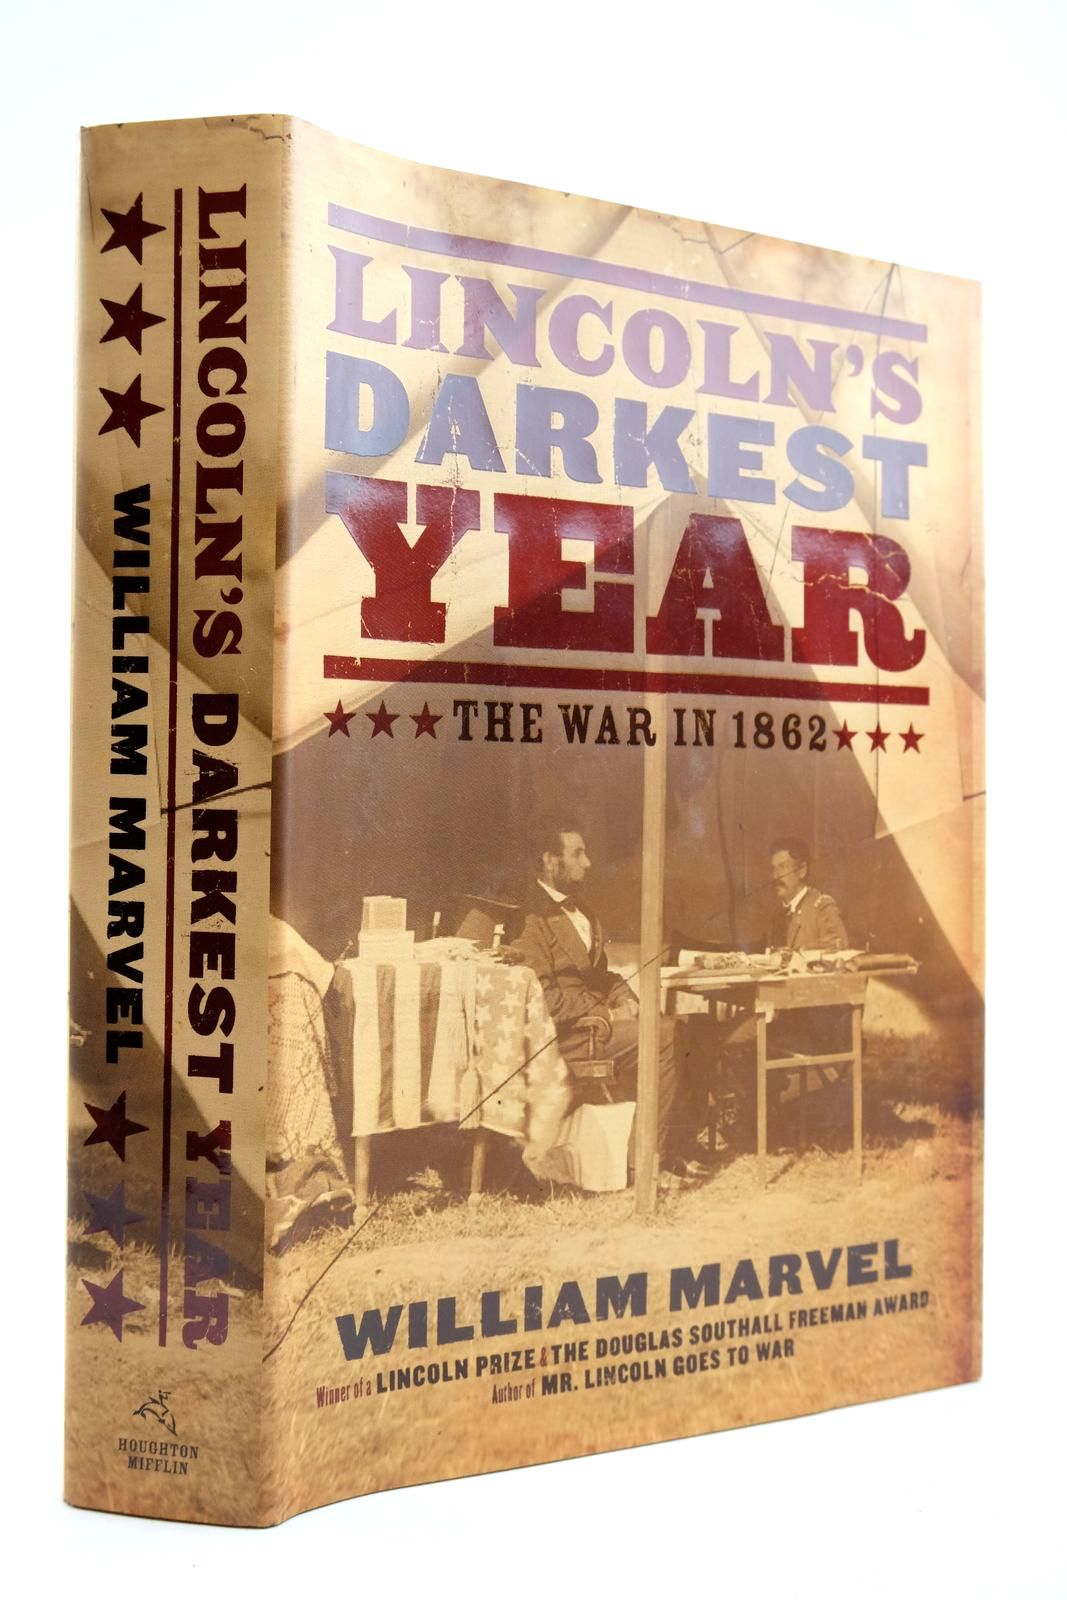 Photo of LINCOLN'S DARKEST YEAR: THE WAR IN 1862 written by Marvel, William published by Houghton Mifflin Company (STOCK CODE: 2134021)  for sale by Stella & Rose's Books